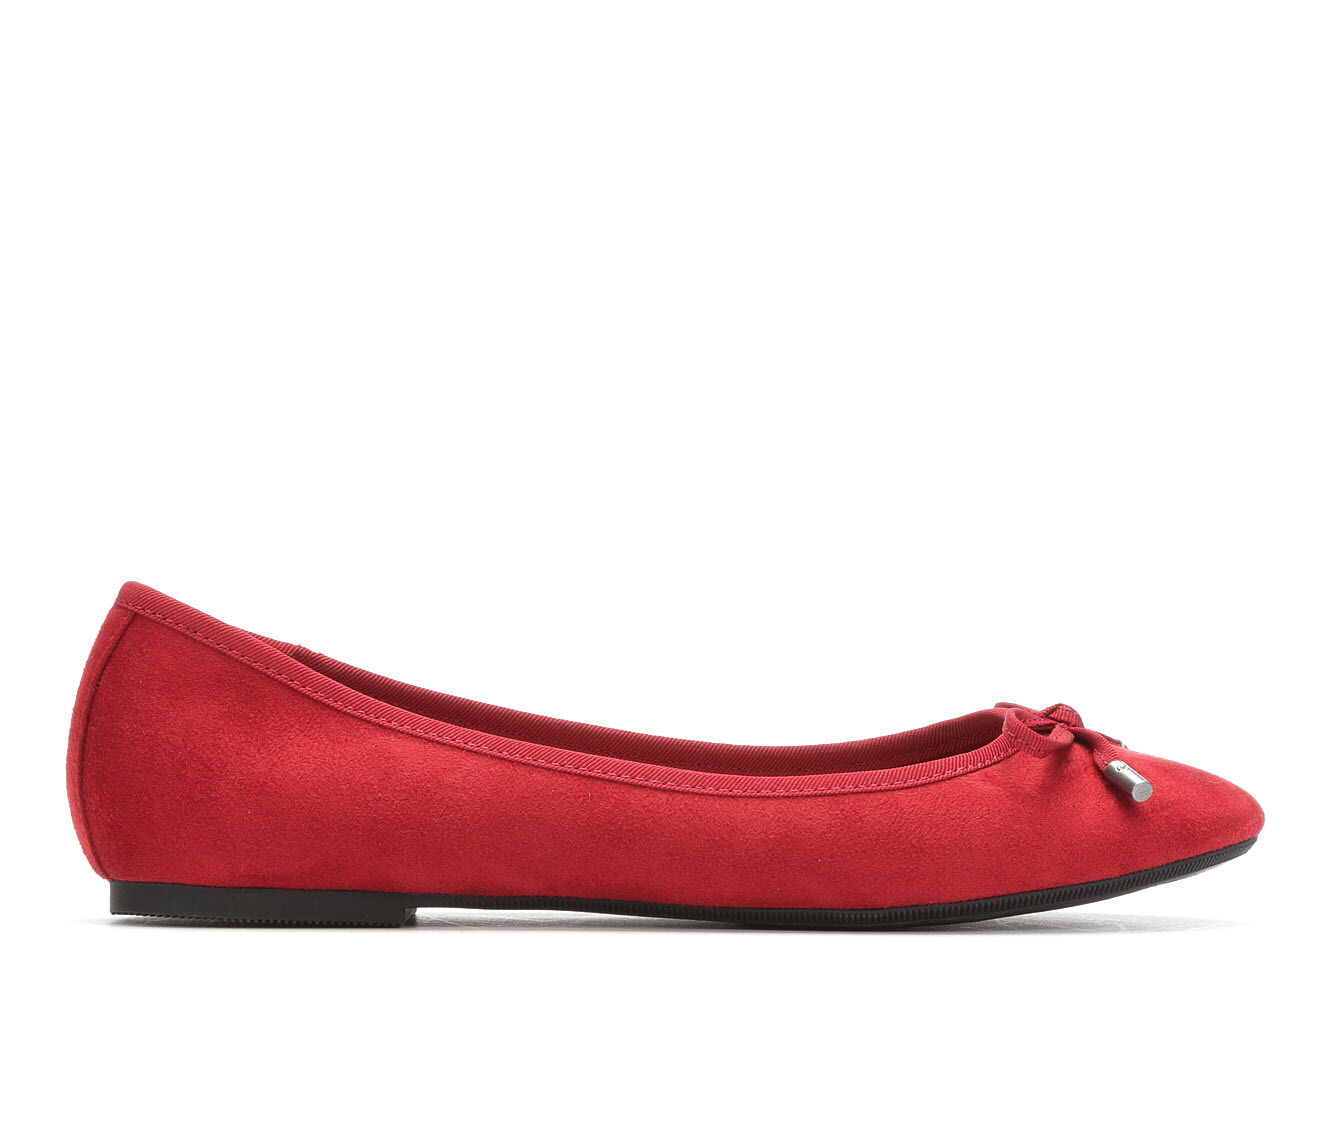 popular sale online Women's No Parking Larsah Flats buy cheap visit XCobO